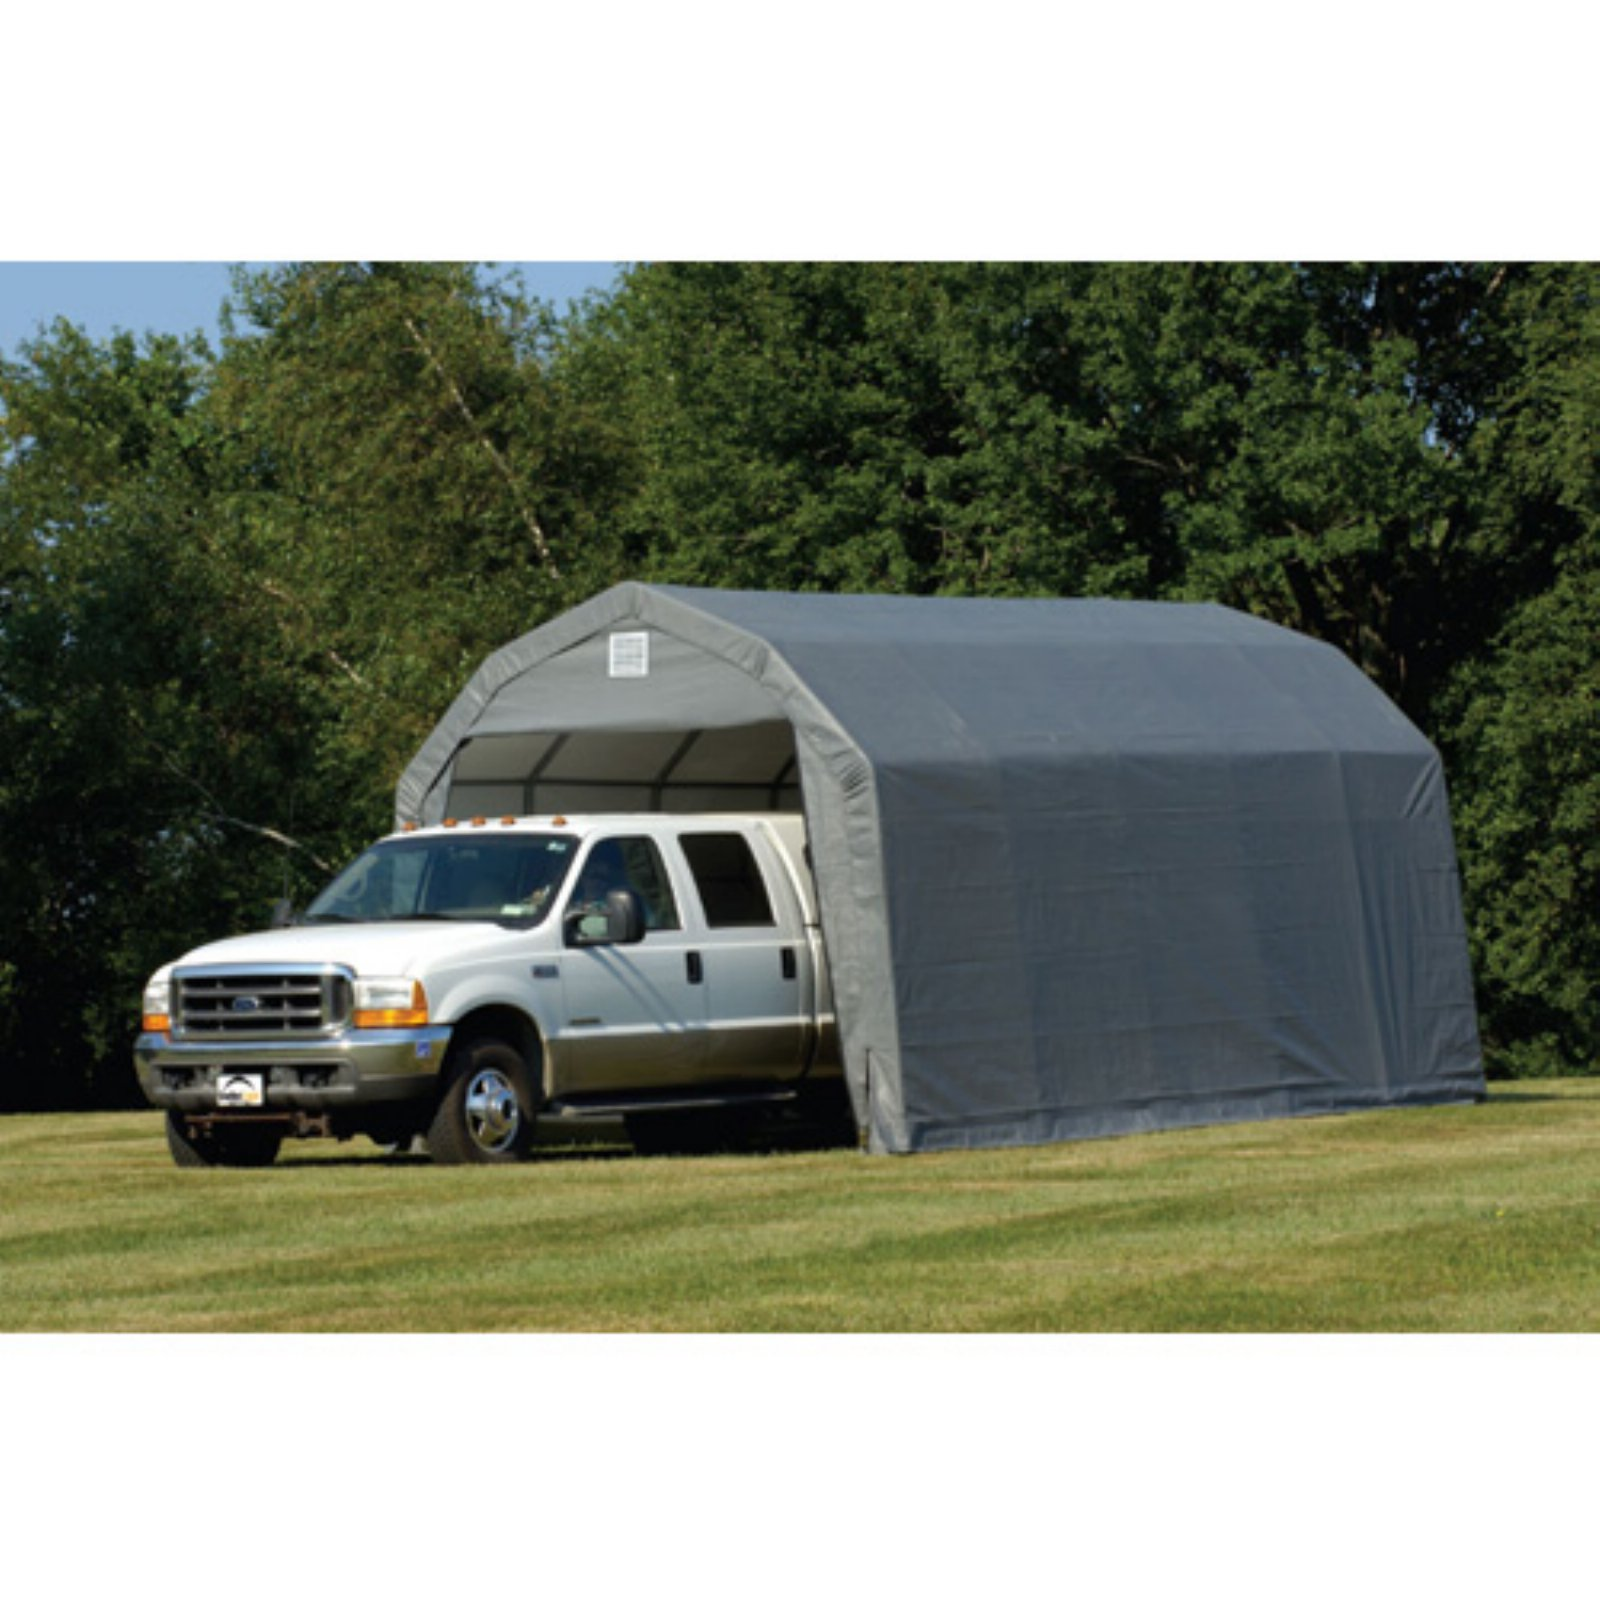 Shelterlogic 12' x 28' x 11' Barn Style Carport Shelter